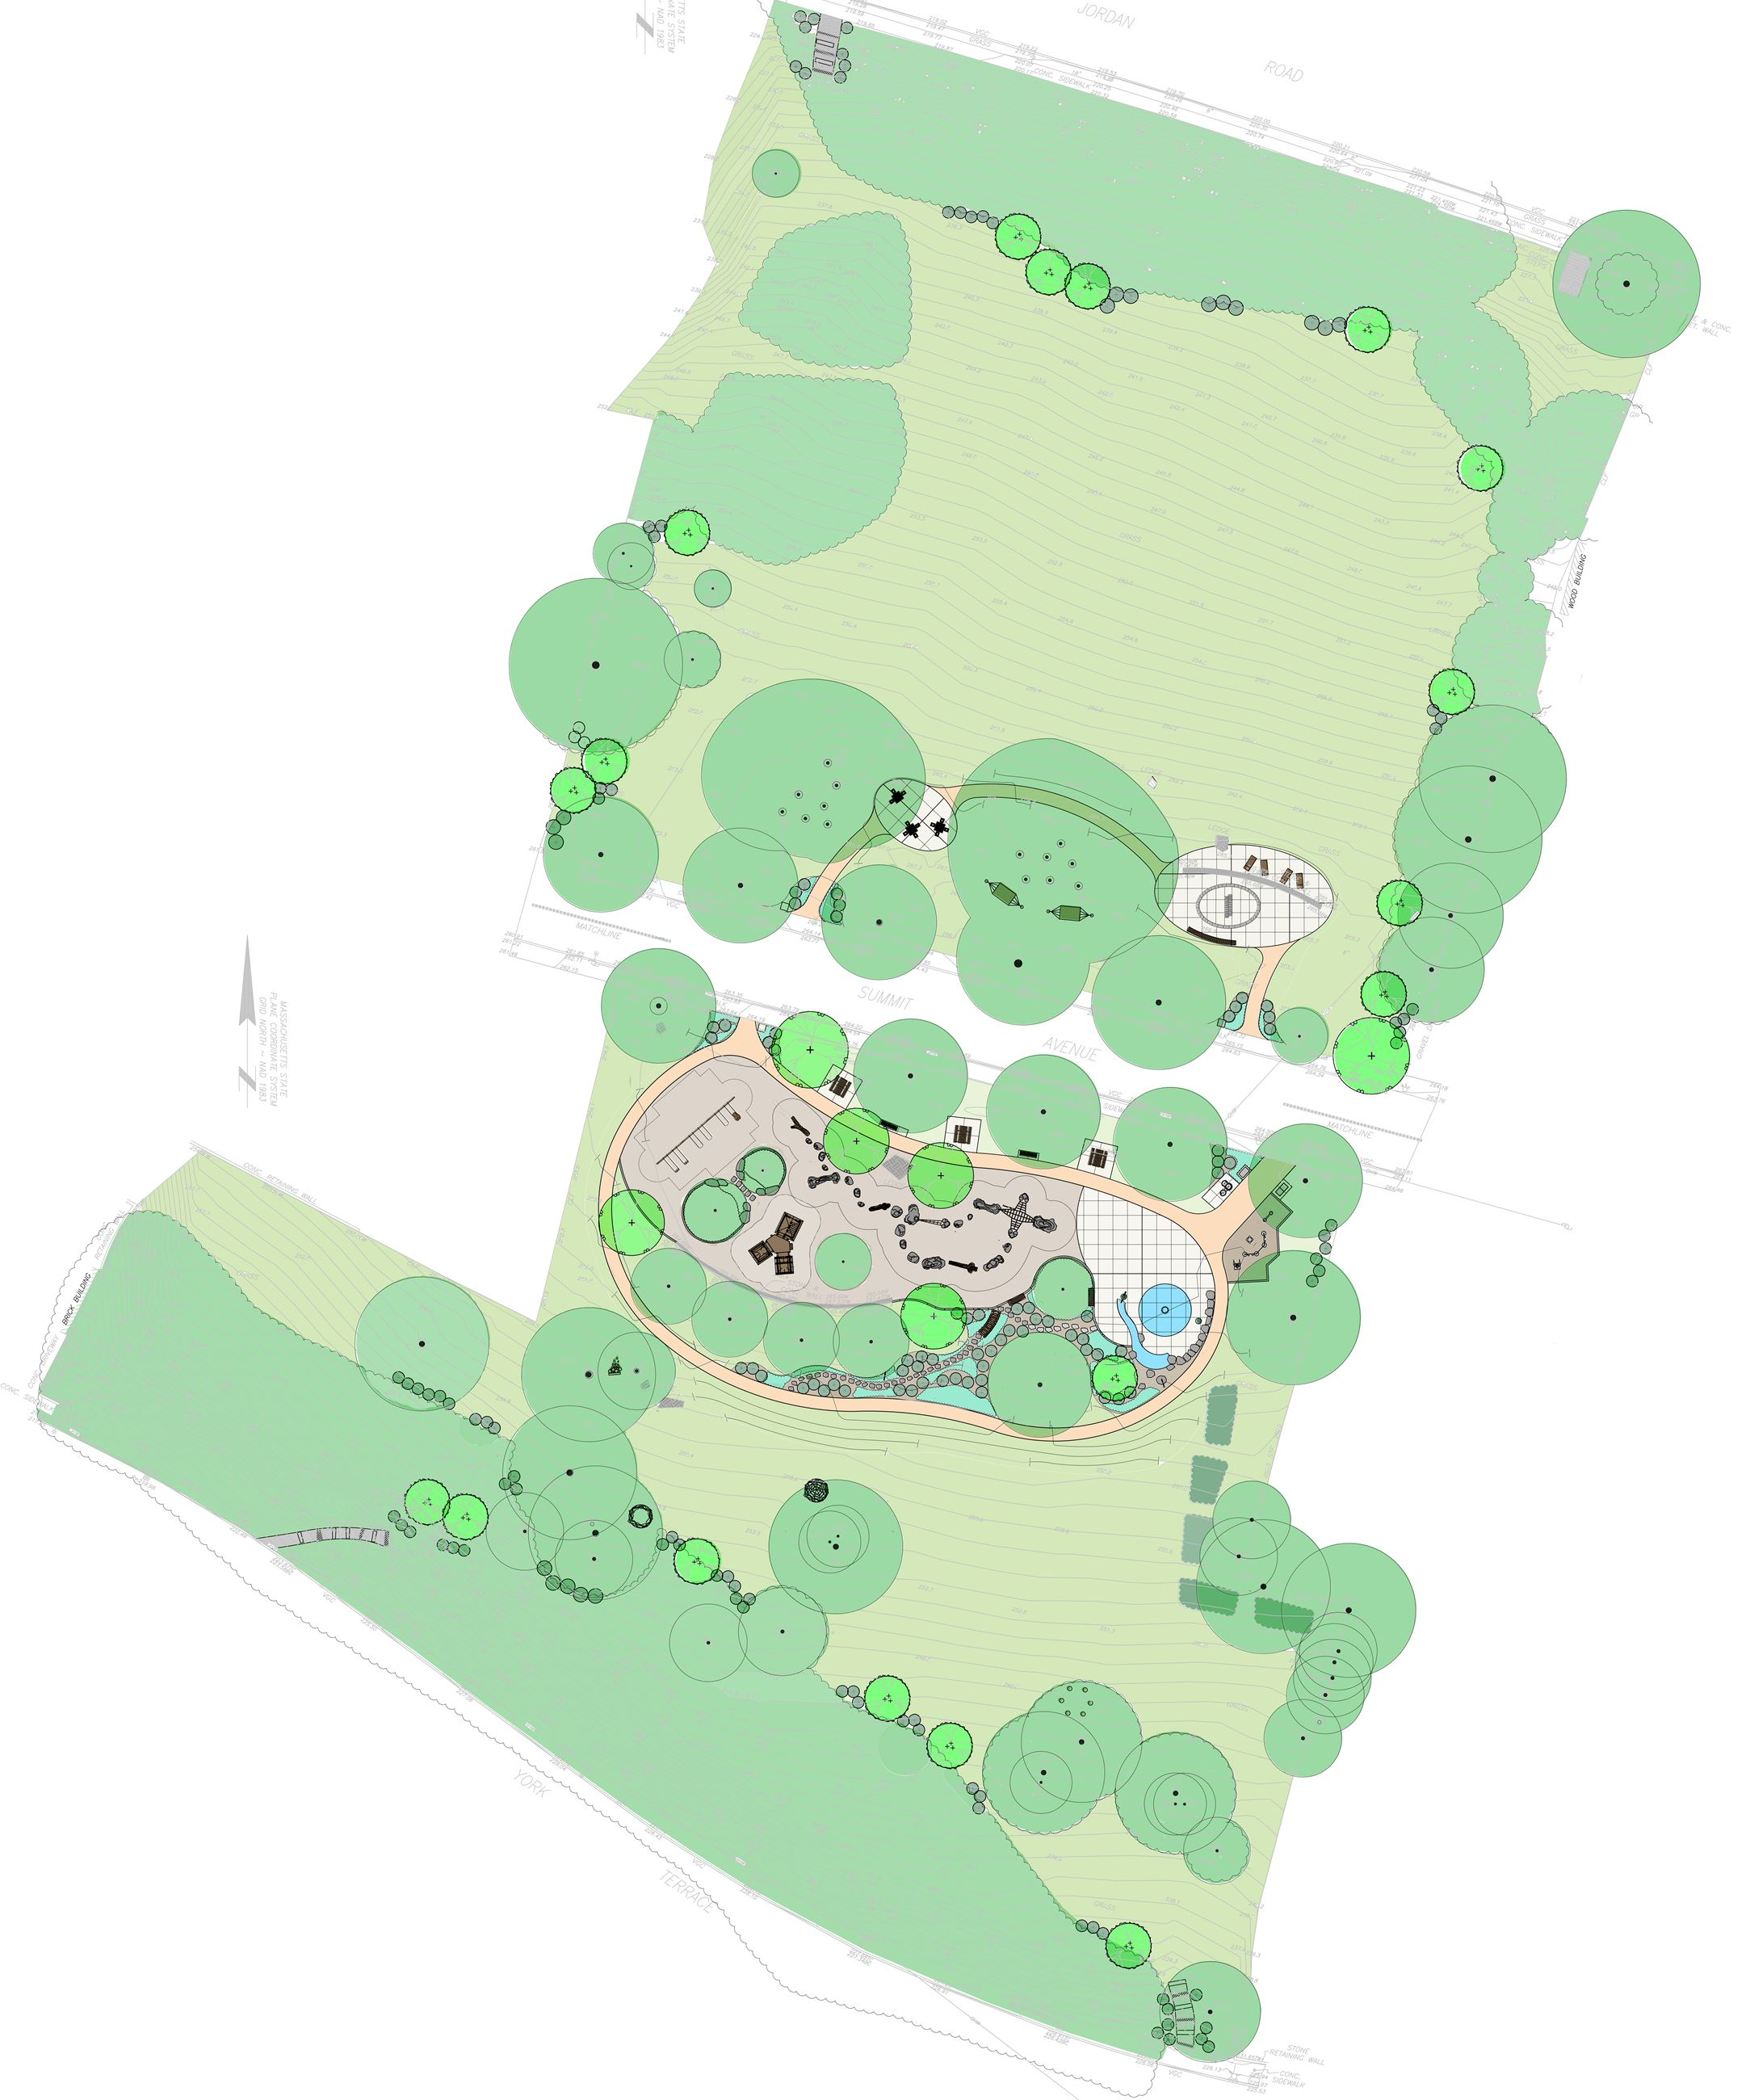 Corey Hill Park Plan